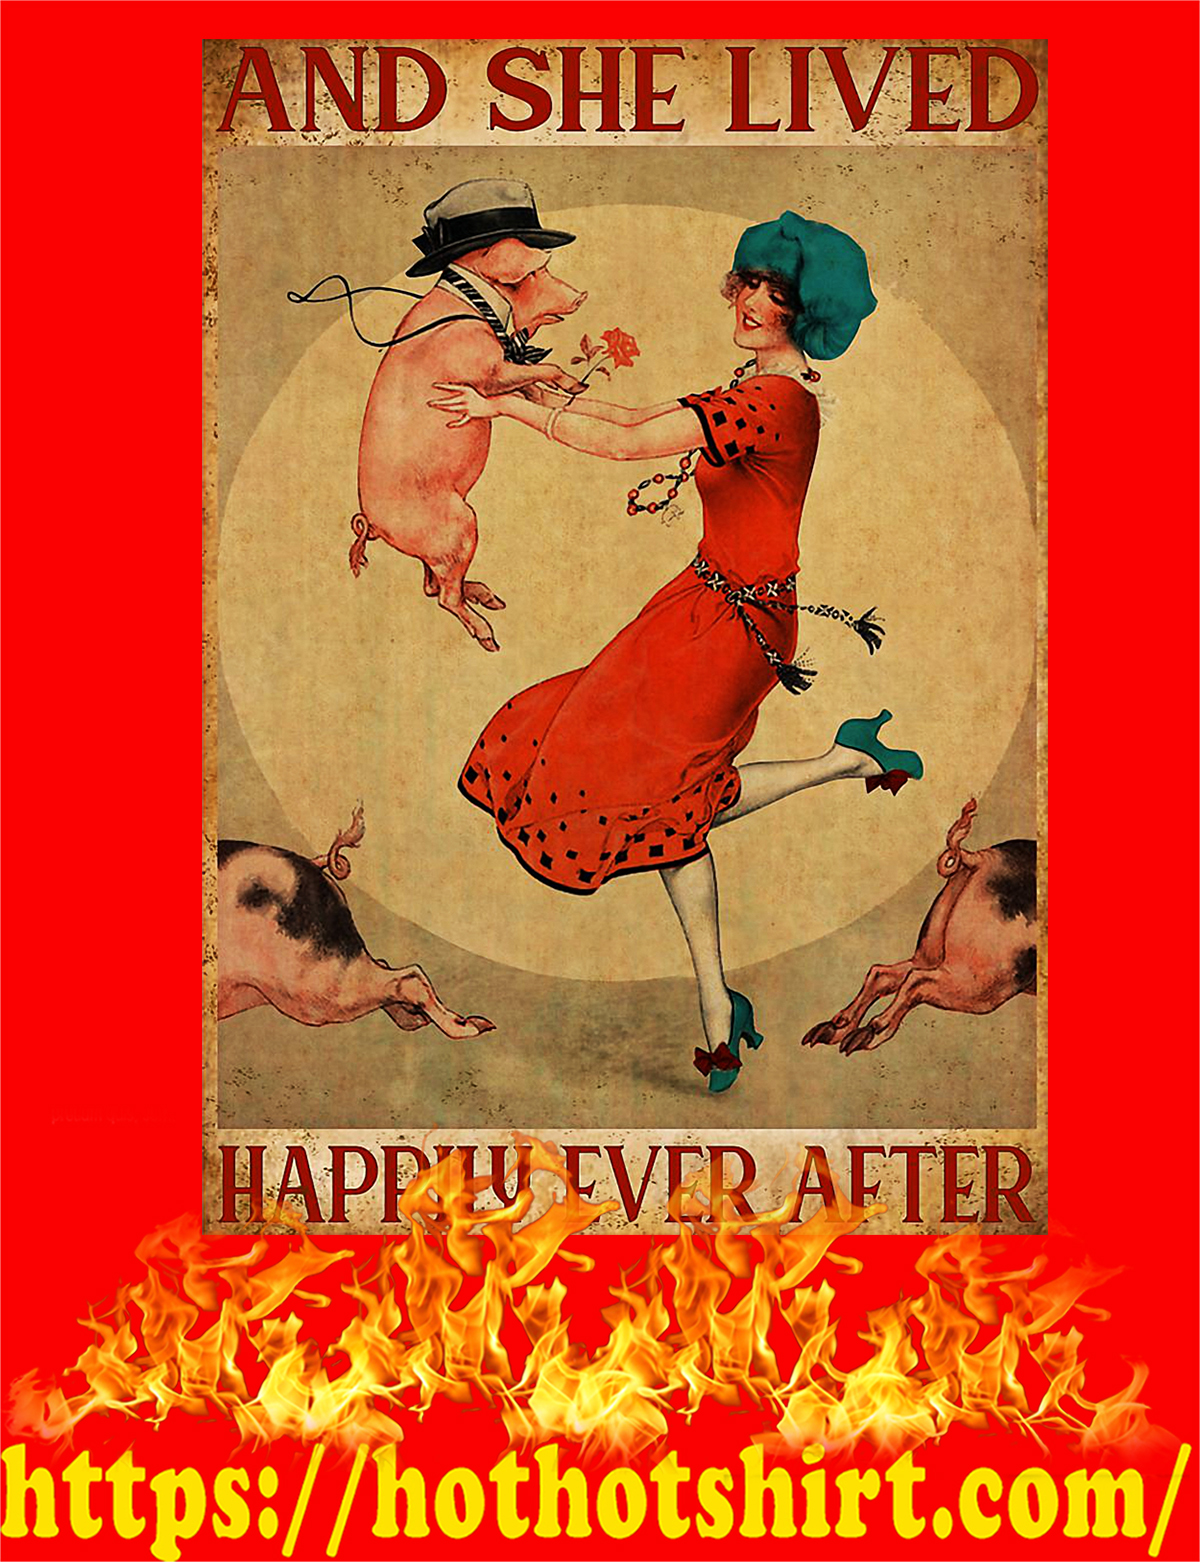 Pig And she lived happily ever after poster